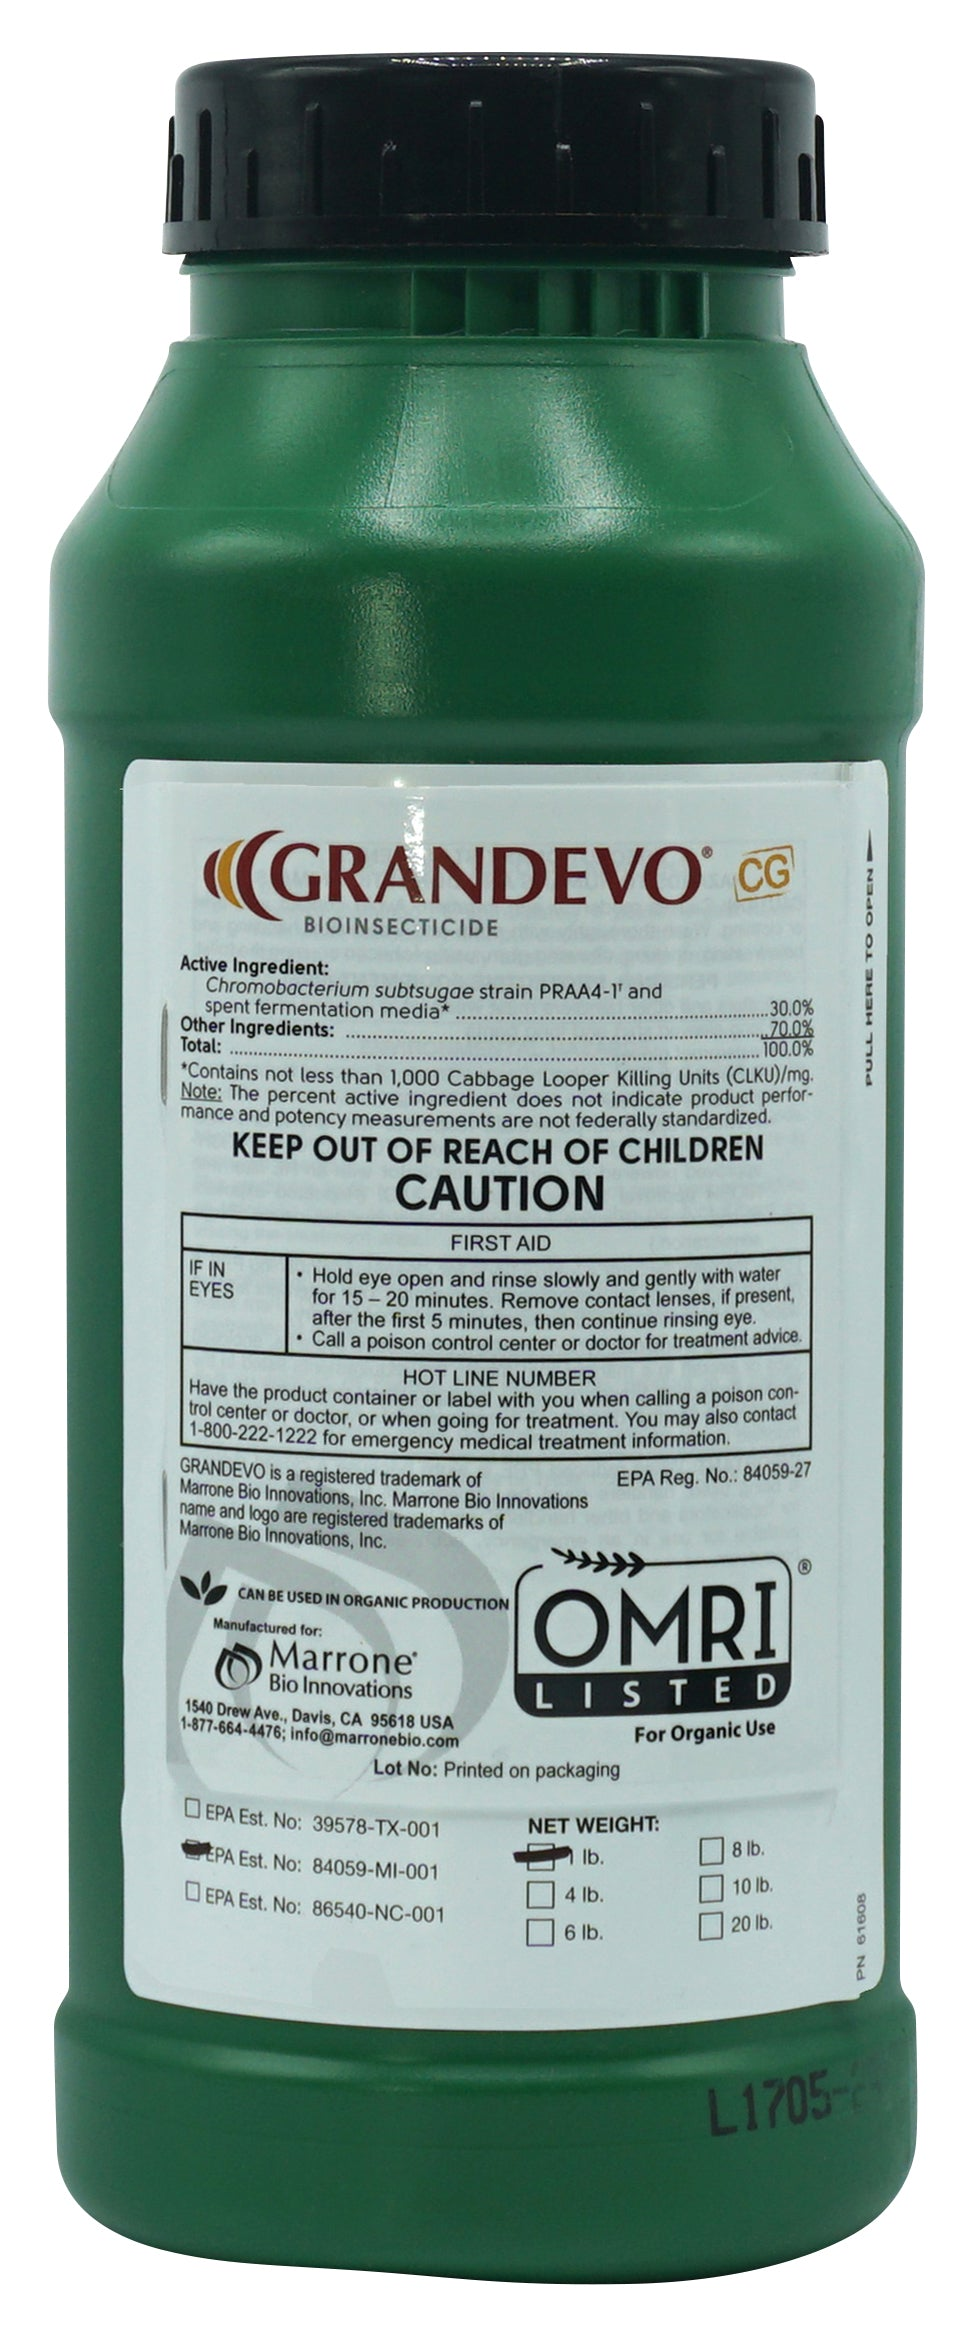 Marrone Bio Innovations - Grandevo CG - Insecticide